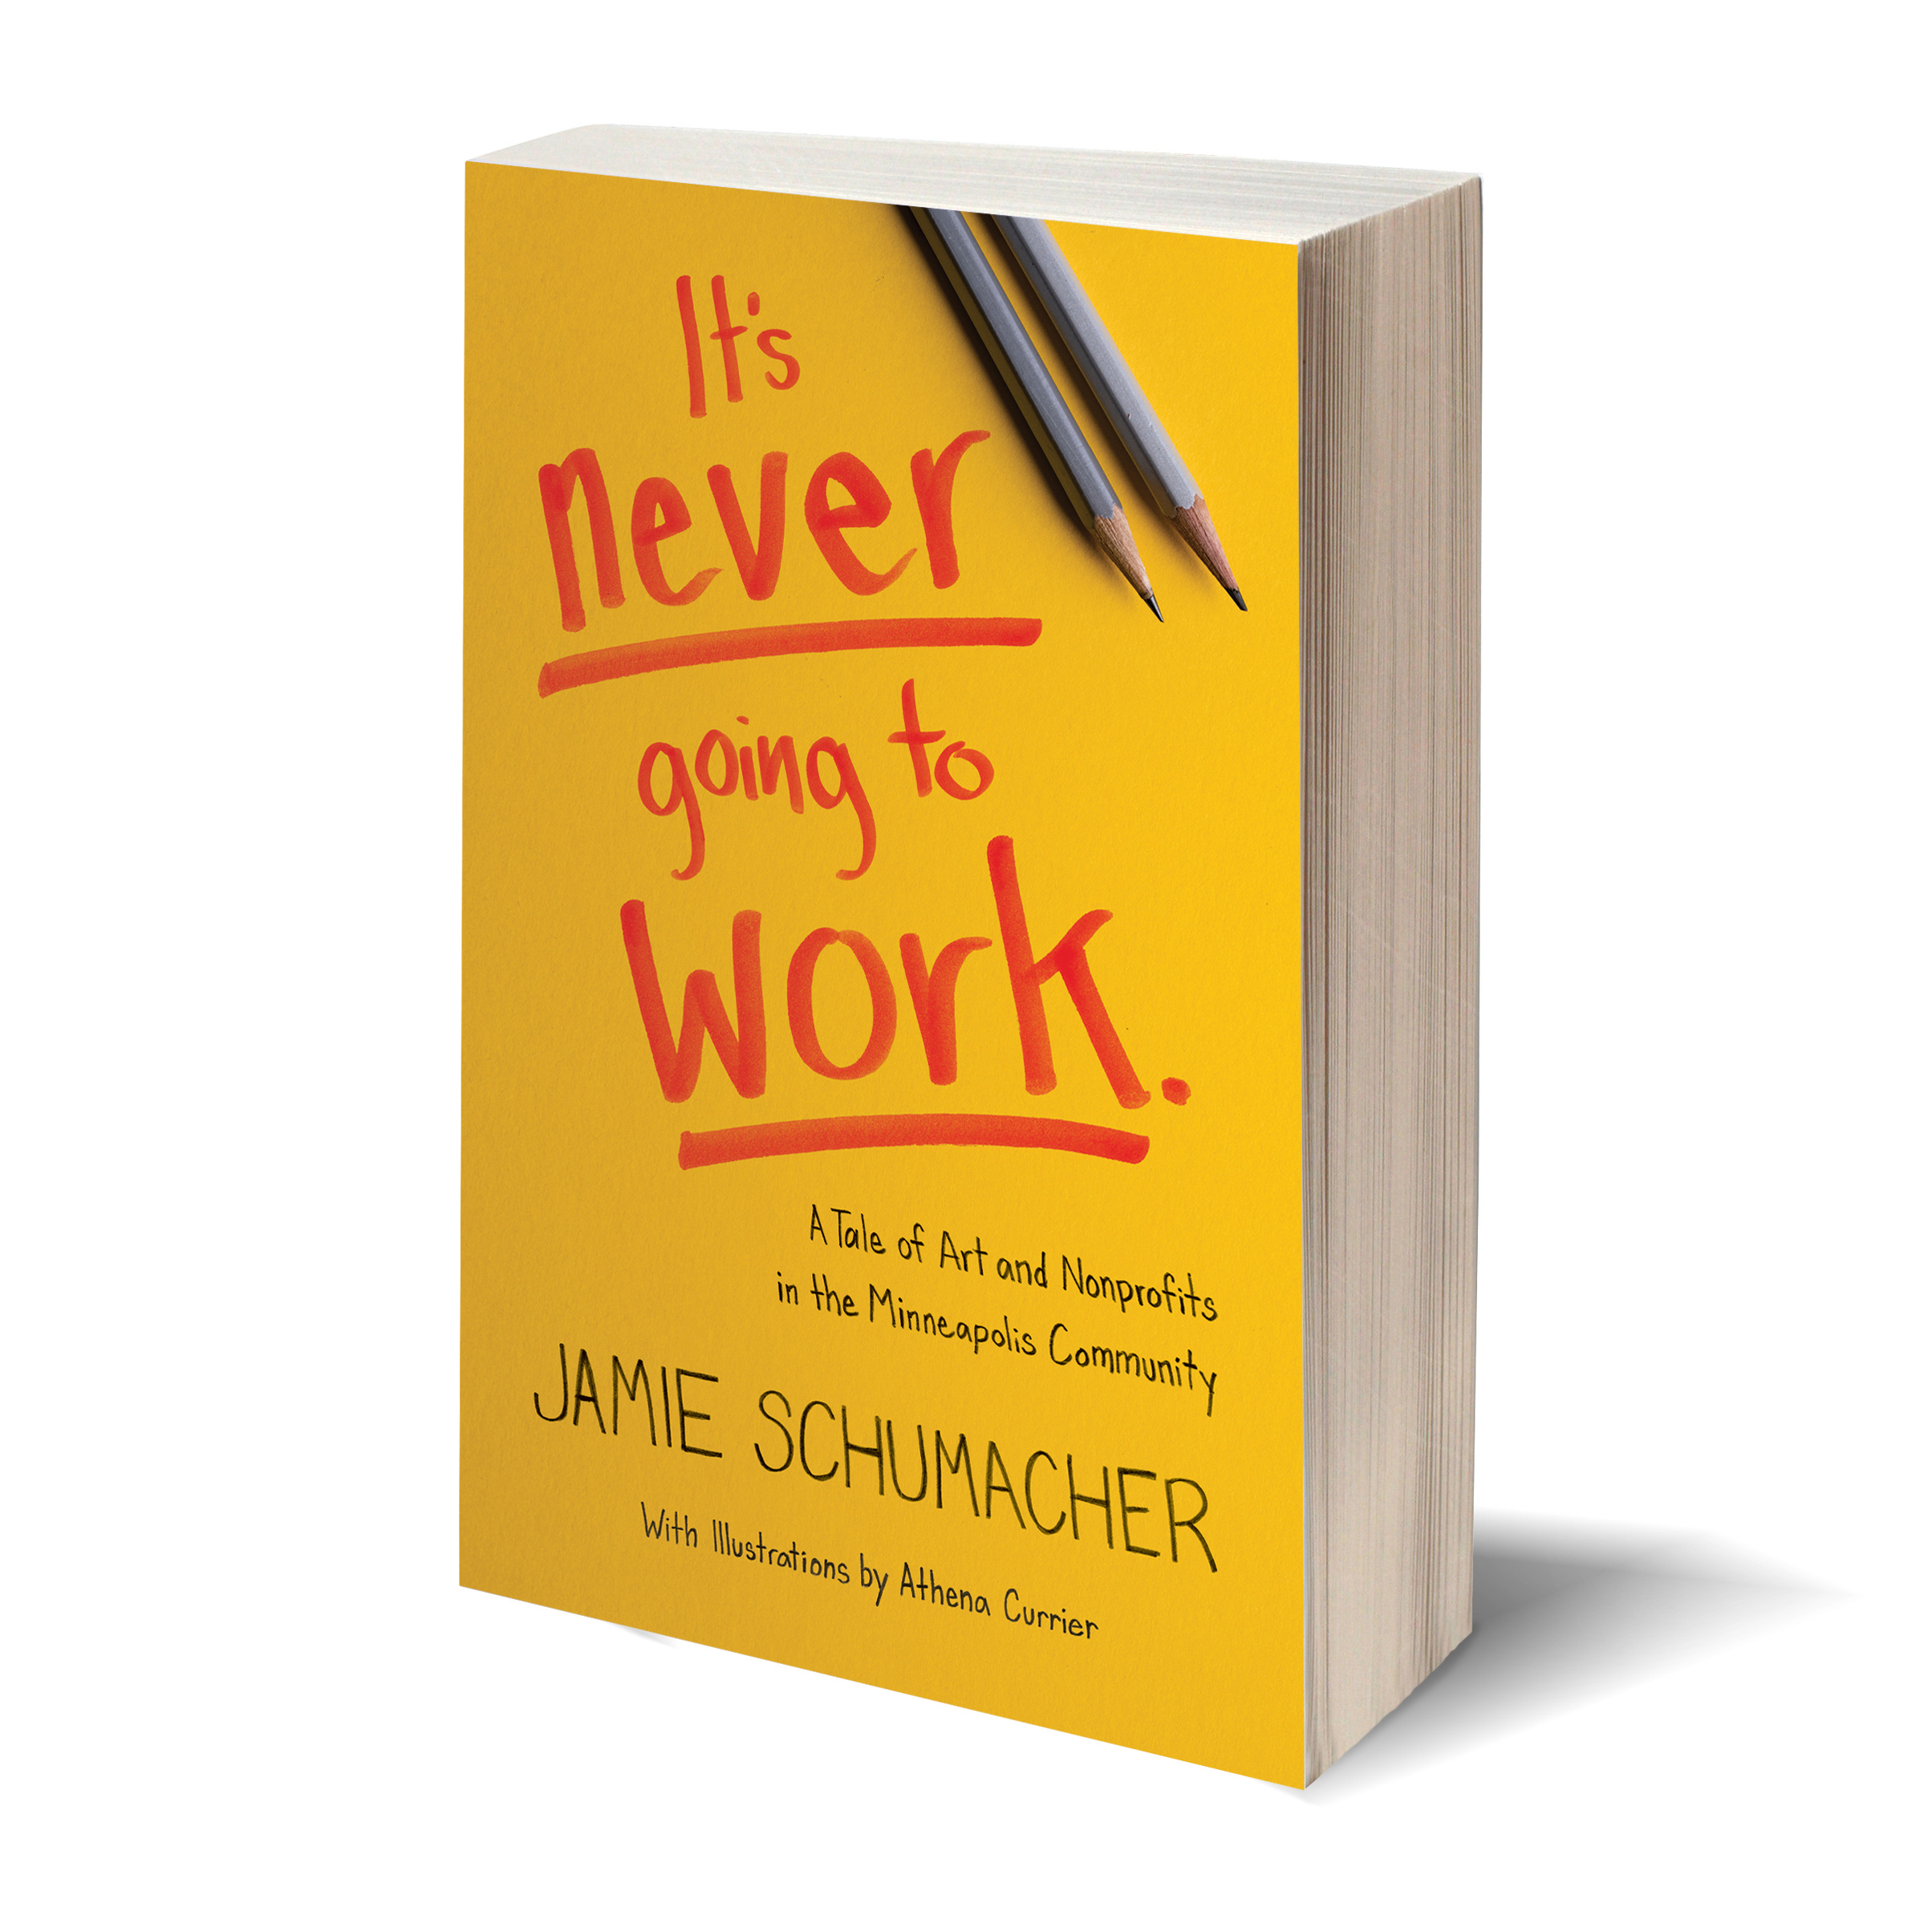 - This post is inspired by artists featured in the upcoming novel:It's Never Going To Work: A Tale of Art and Nonprofits in the Minneapolis Community.It's Never Going To Work is a light-hearted, illustrated novel that offers real-life insights on founding a collaborative nonprofit art space. It provides tools, tips, resources, and camaraderie to those engaged in, and struggling with, grassroots development.